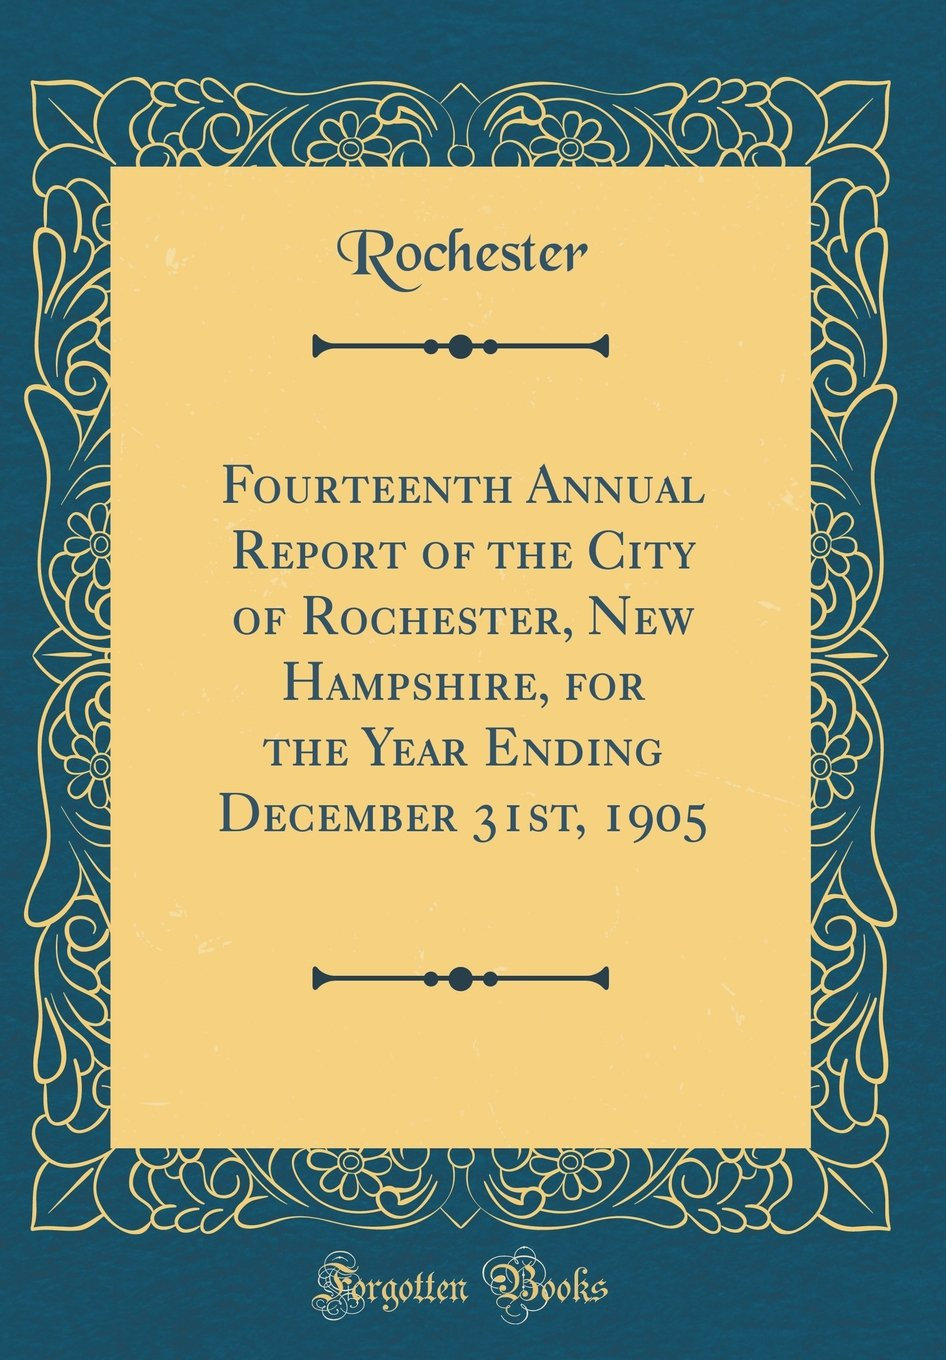 Download Fourteenth Annual Report of the City of Rochester, New Hampshire, for the Year Ending December 31st, 1905 (Classic Reprint) ebook